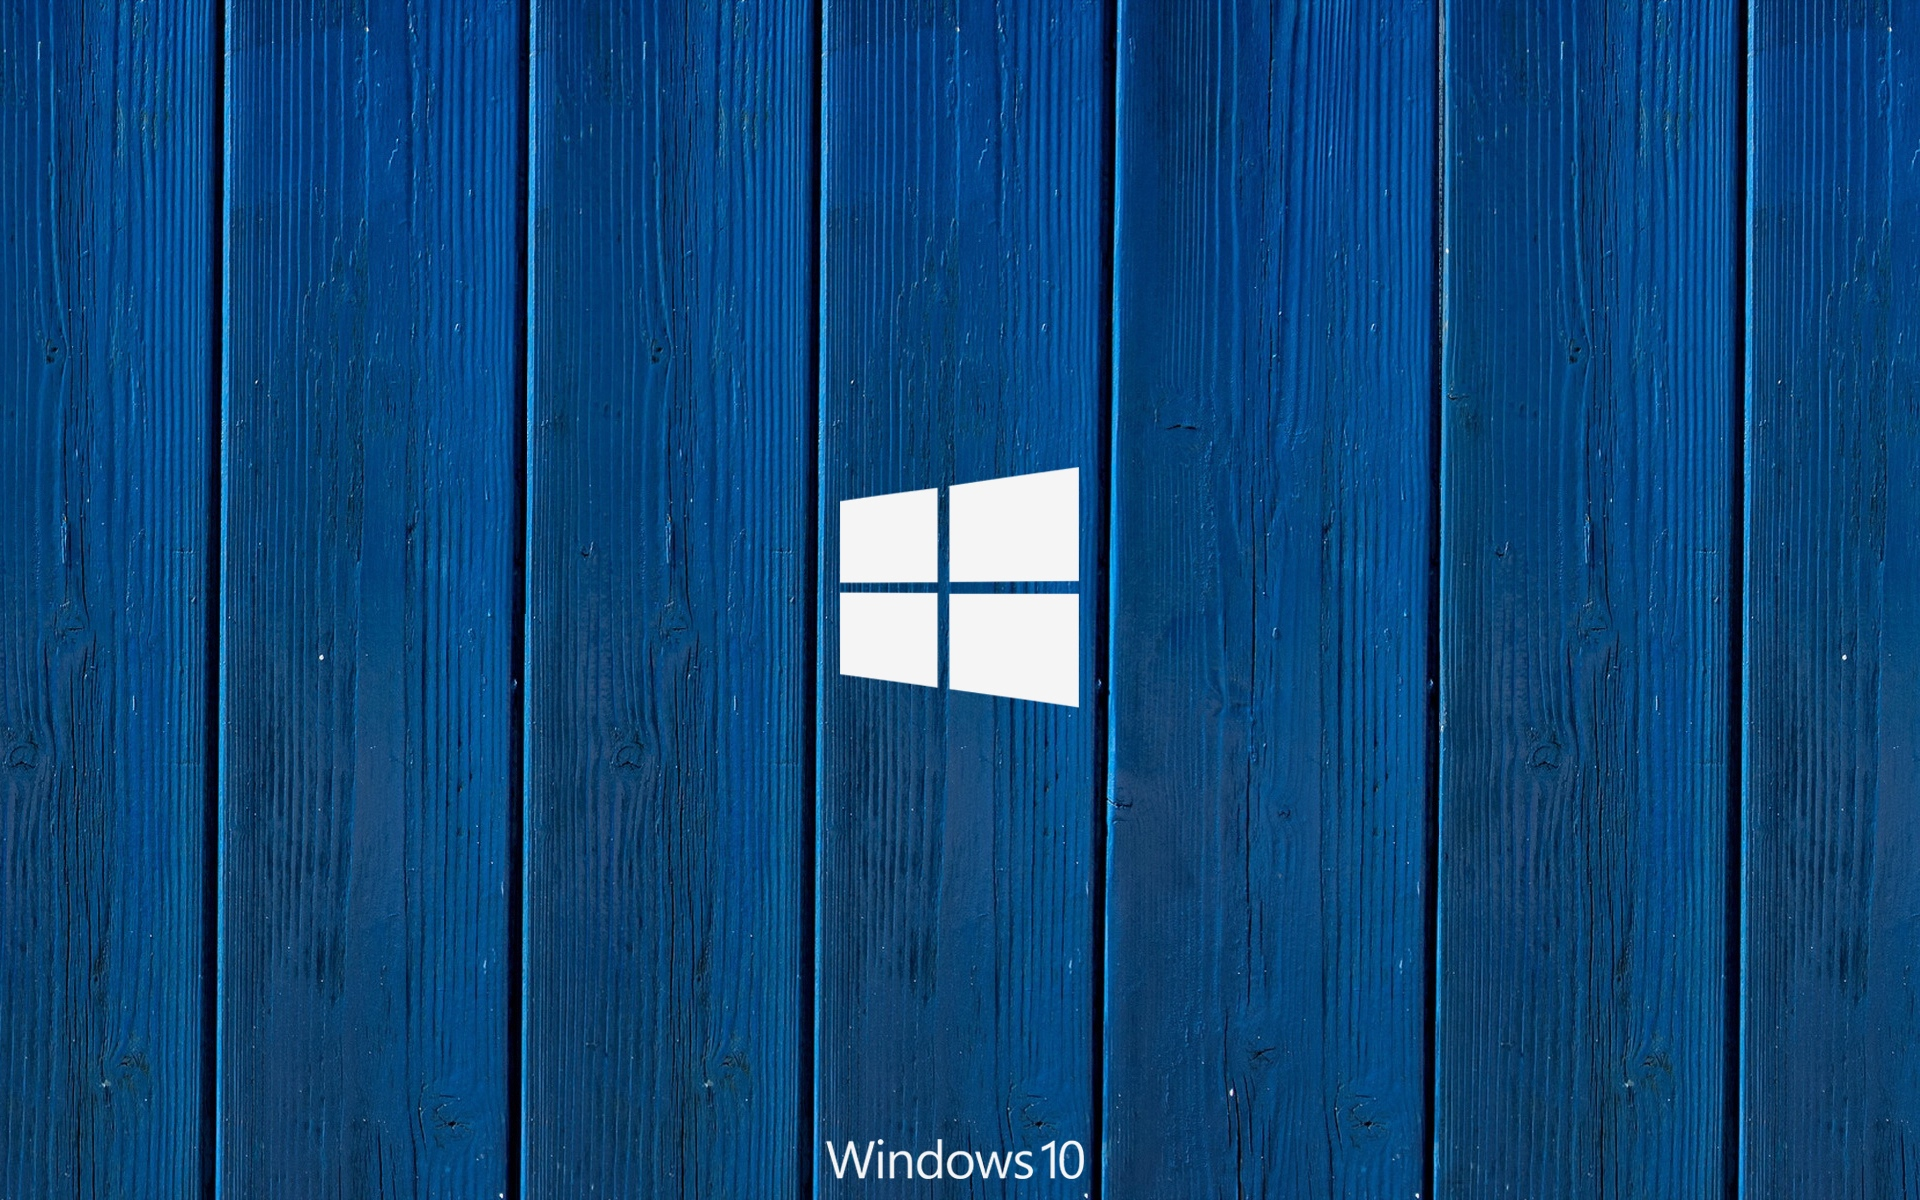 windows logo texture